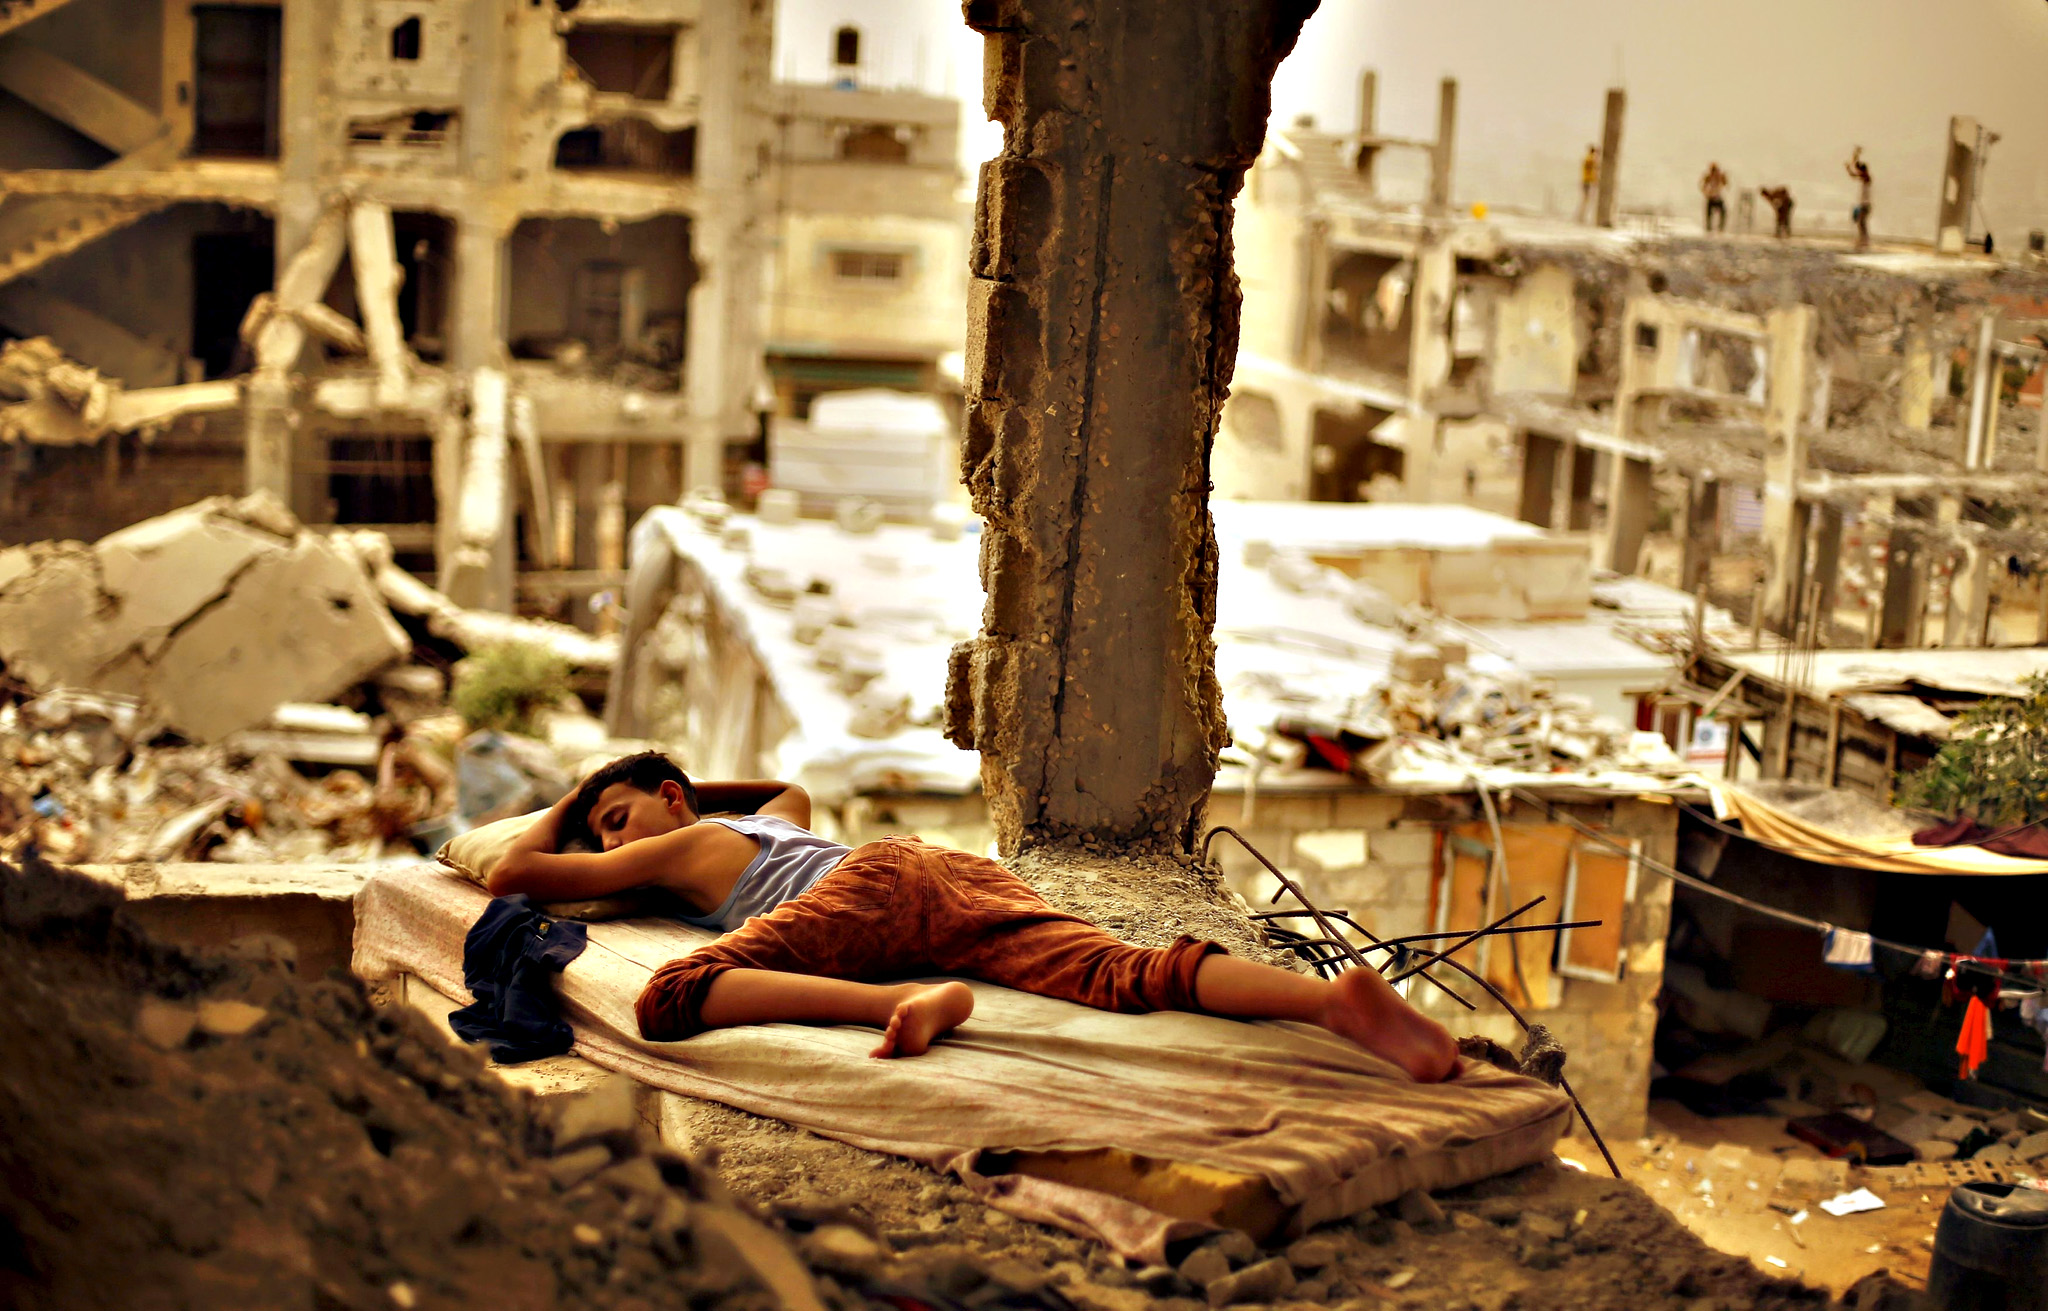 A Palestinian boy sleeps on a mattress inside the remains of his family's house, that witnesses said was destroyed by Israeli shelling during a 50-day war in 2014 summer, during a sandstorm in Gaza September 8, 2015. A heavy sandstorm swept across parts of the Middle East on Tuesday, killing two people and hospitalising hundreds in Lebanon and disrupting fighting and air strikes in neighbouring Syria. Clouds of dust also engulfed Israel, Jordan and Cyprus where aircraft were diverted to Paphos from Larnaca airport as visibility fell to 500 metres